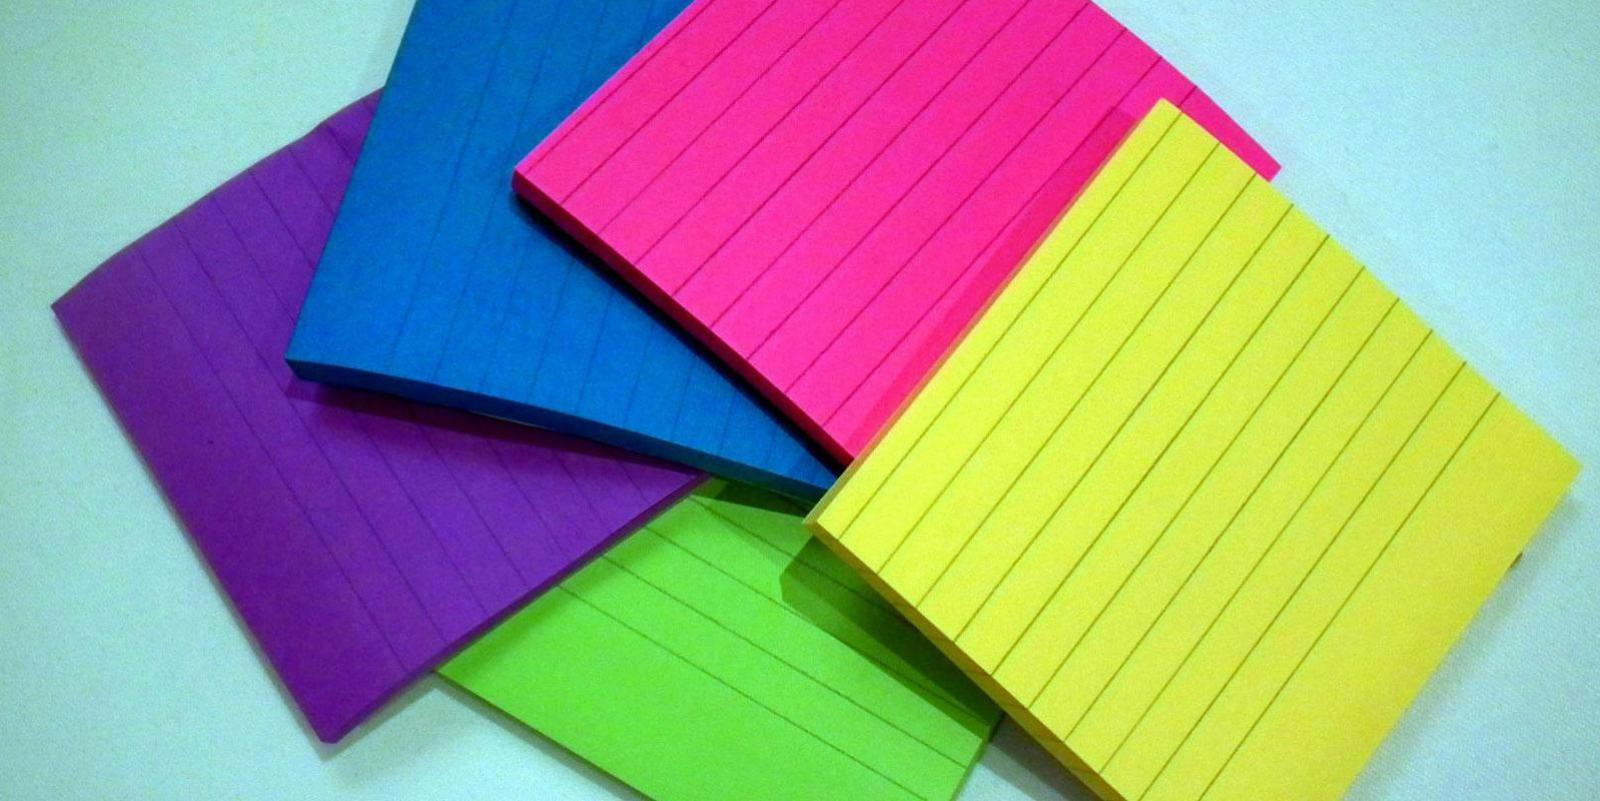 Multi-colored postits